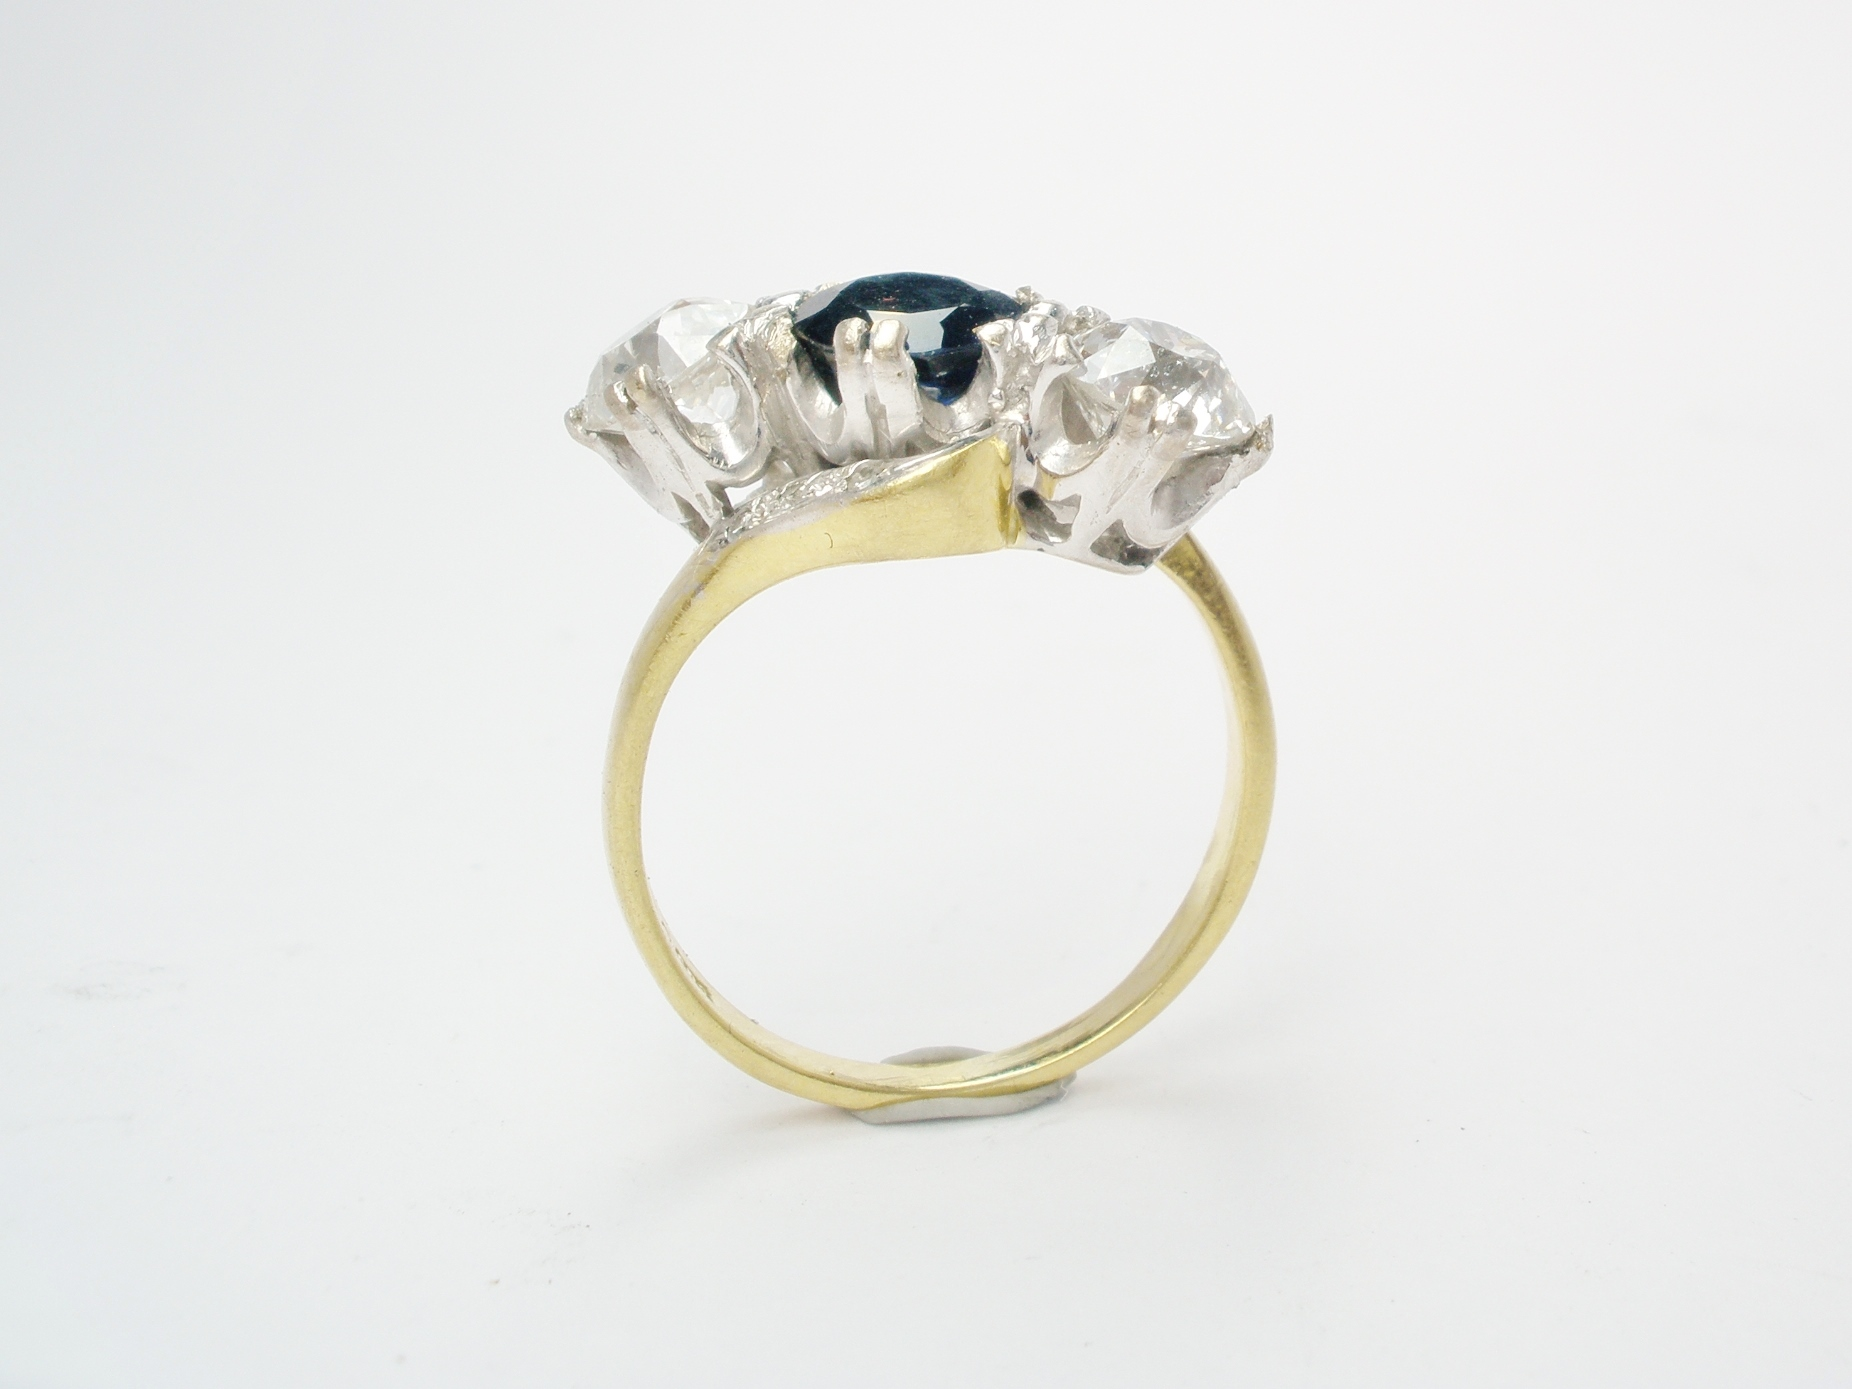 A 3 stone cross-over diamond and sapphire ring mounted in an 18ct. white gold block style setting with an 18ct. yellow shank set with small diamond set in the shoulders.